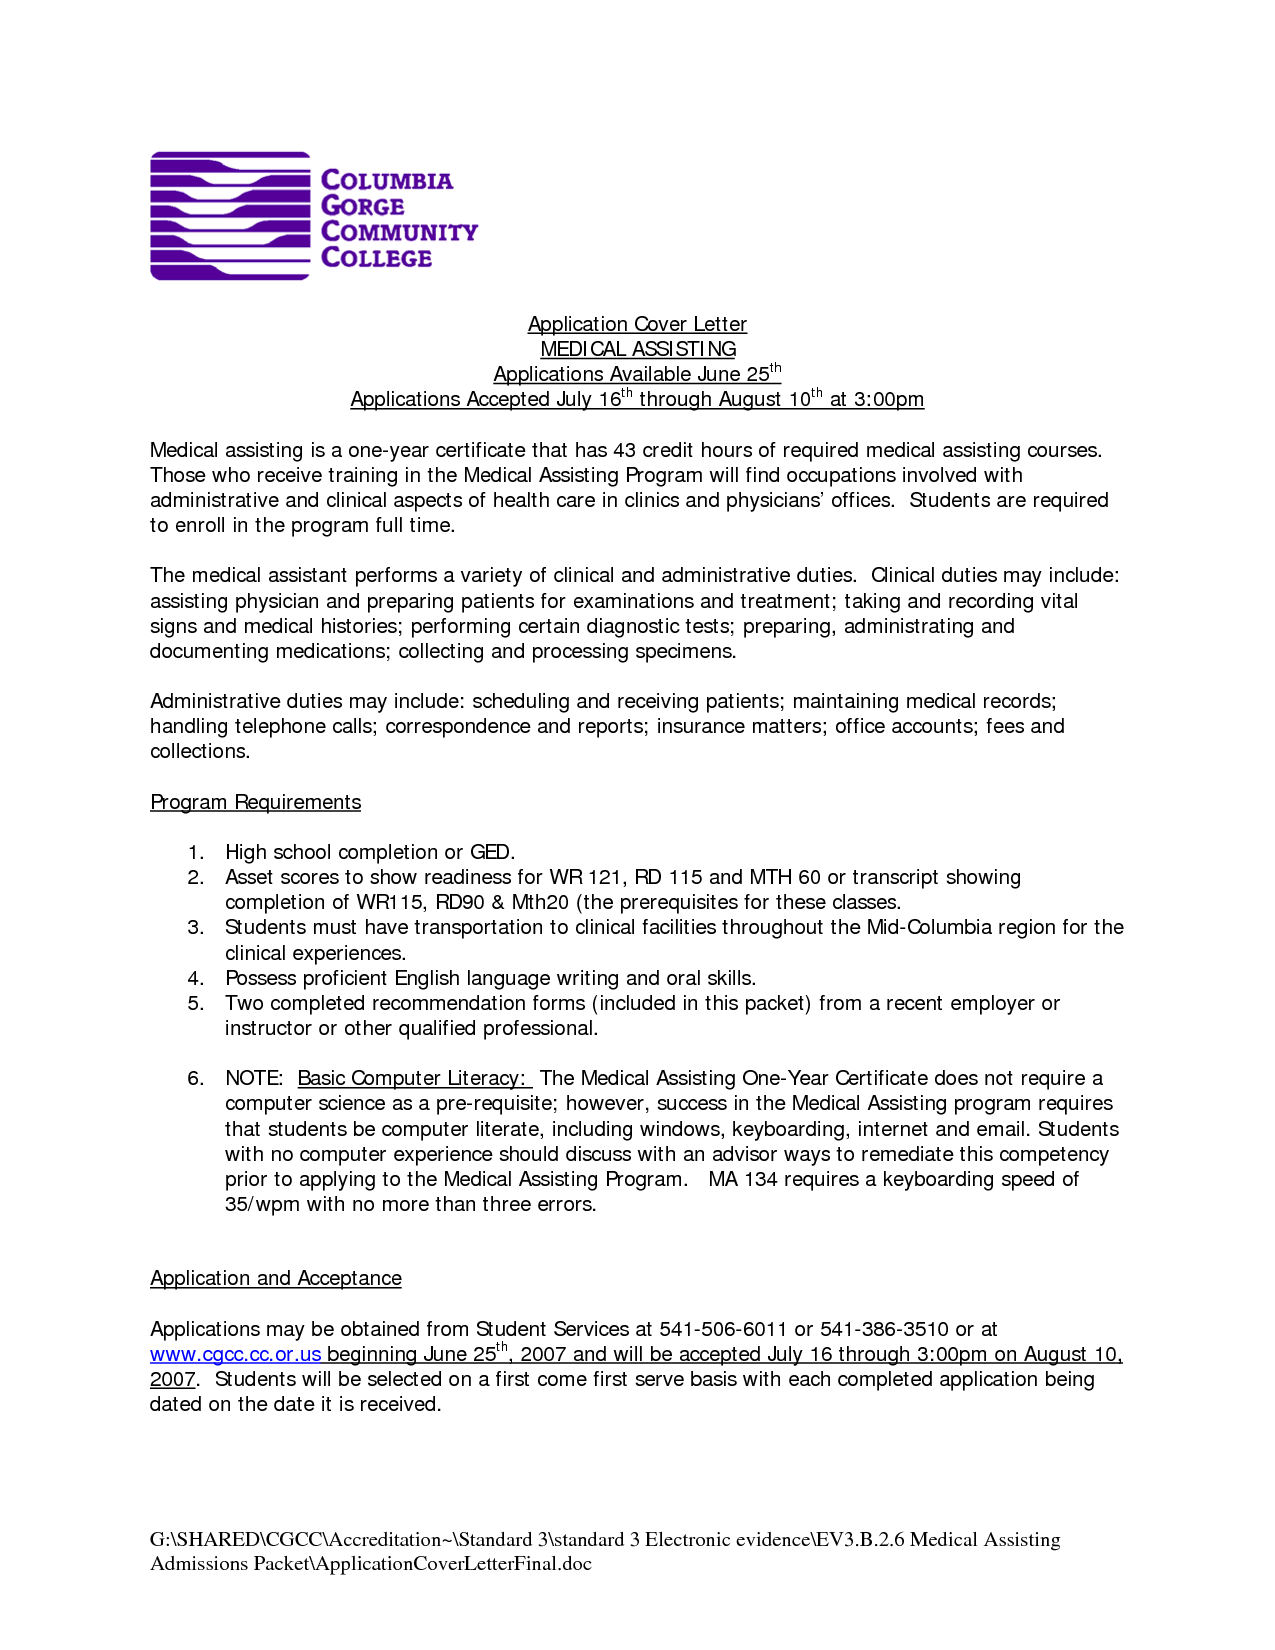 Medical Field Cover Letter For Healthcare Administration Primary Pictures Awesome